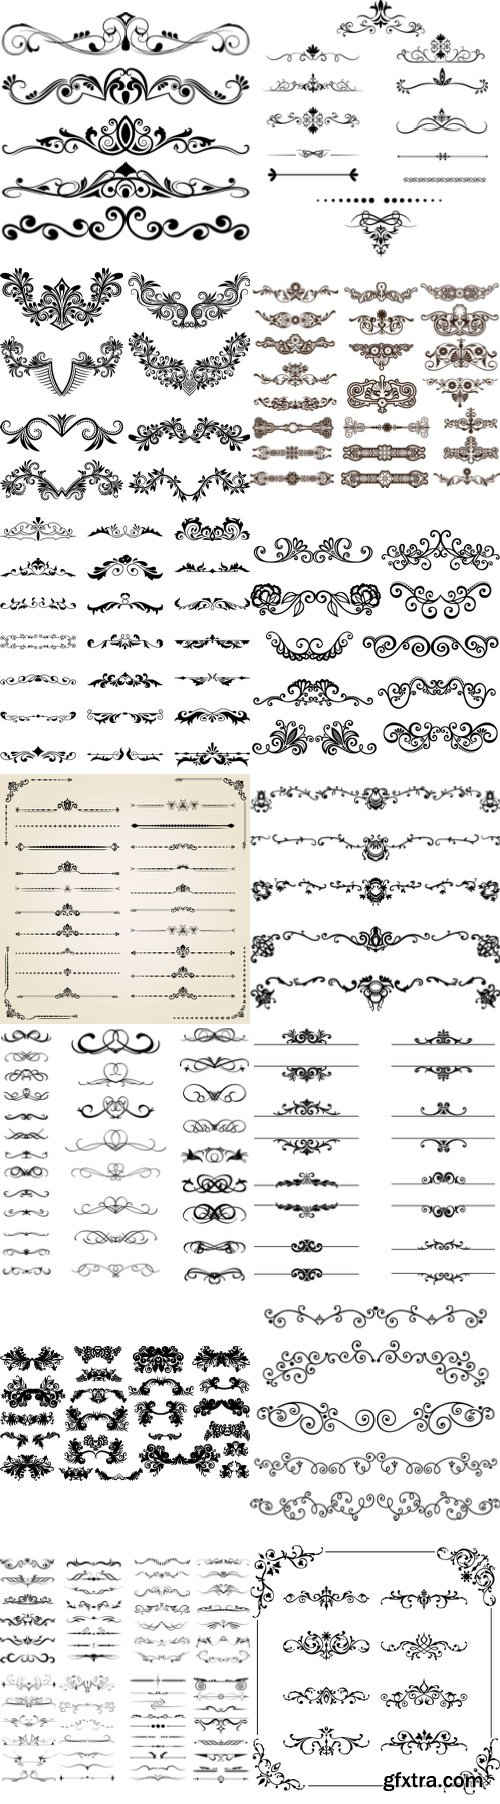 Vectors - Ornamental Floral Dividers [ALL 39 SETS IN 1!] 139xEPS